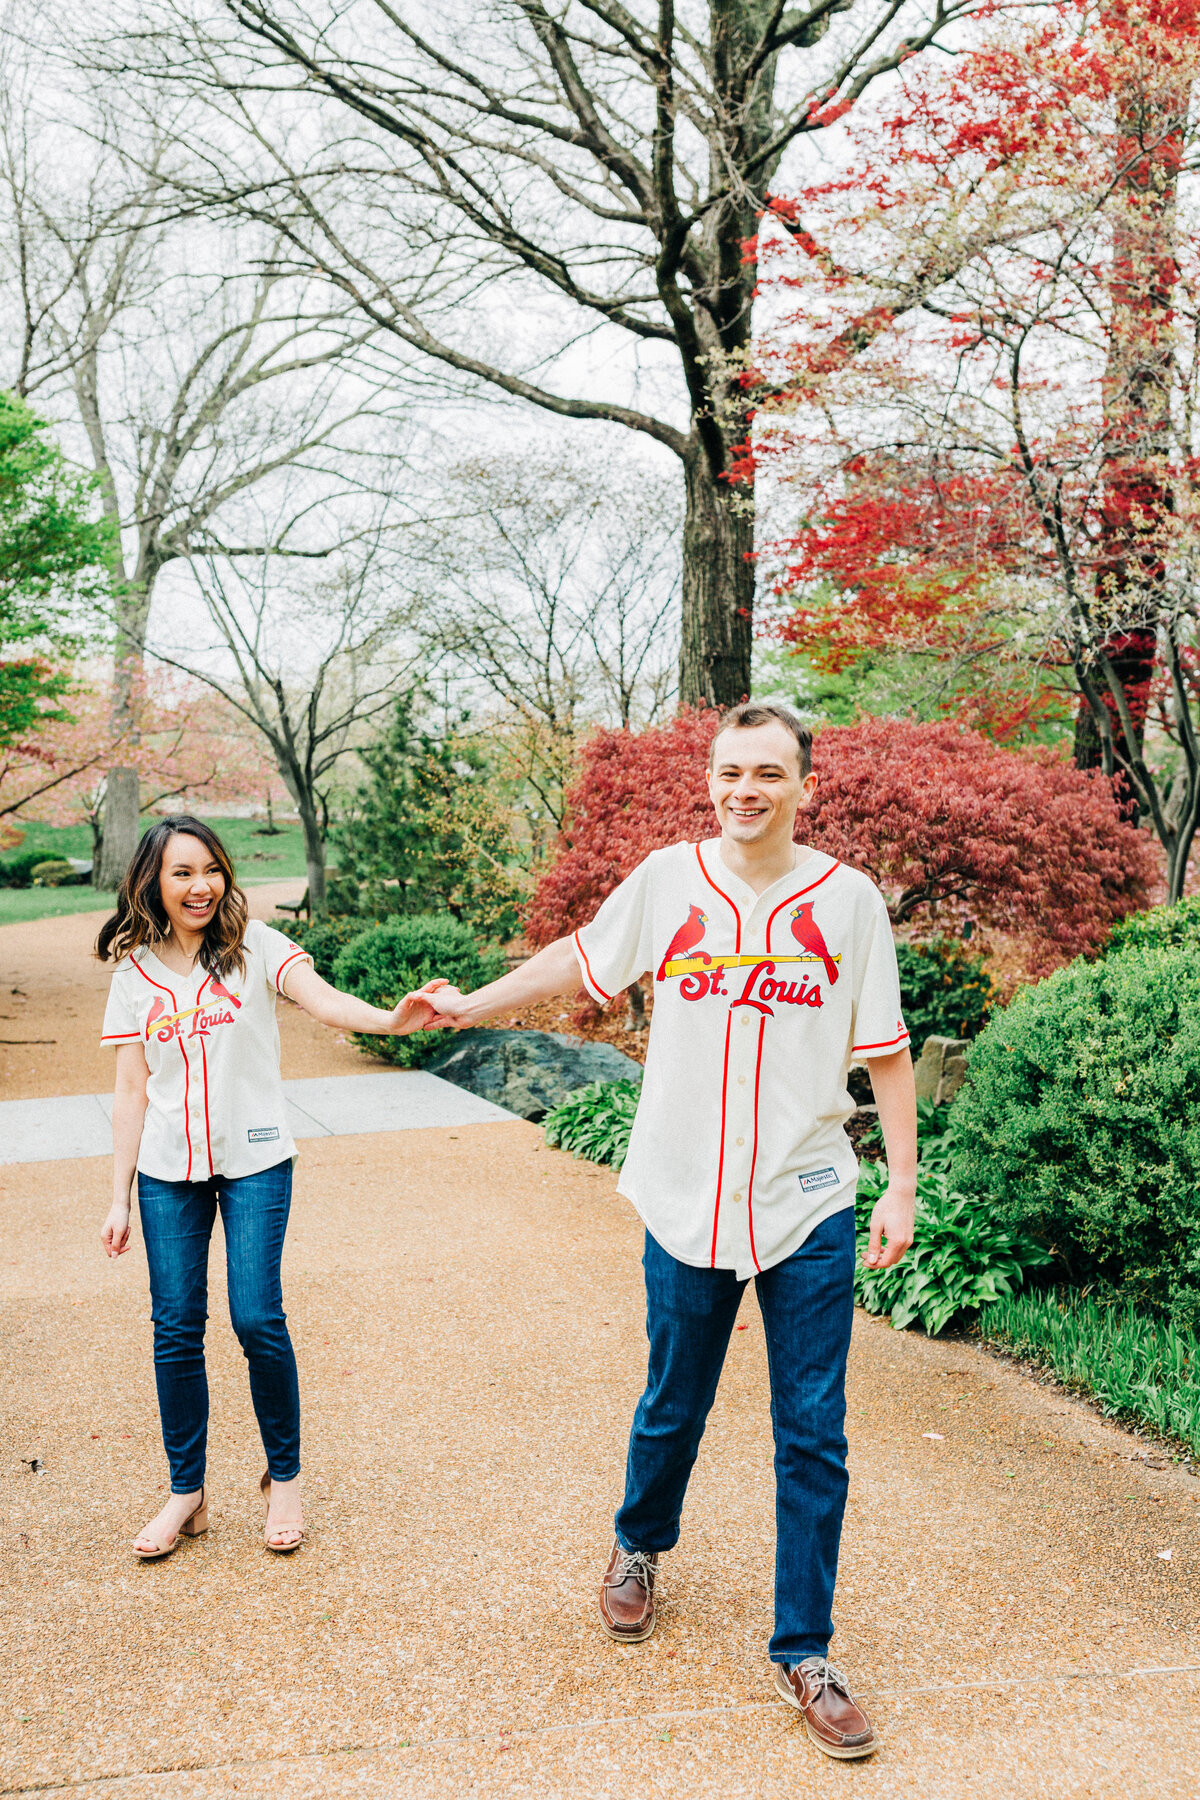 Dorothy_Louise_Photography_Maria_Nick_Missouri_Botanical_Garden_Engagement-7649